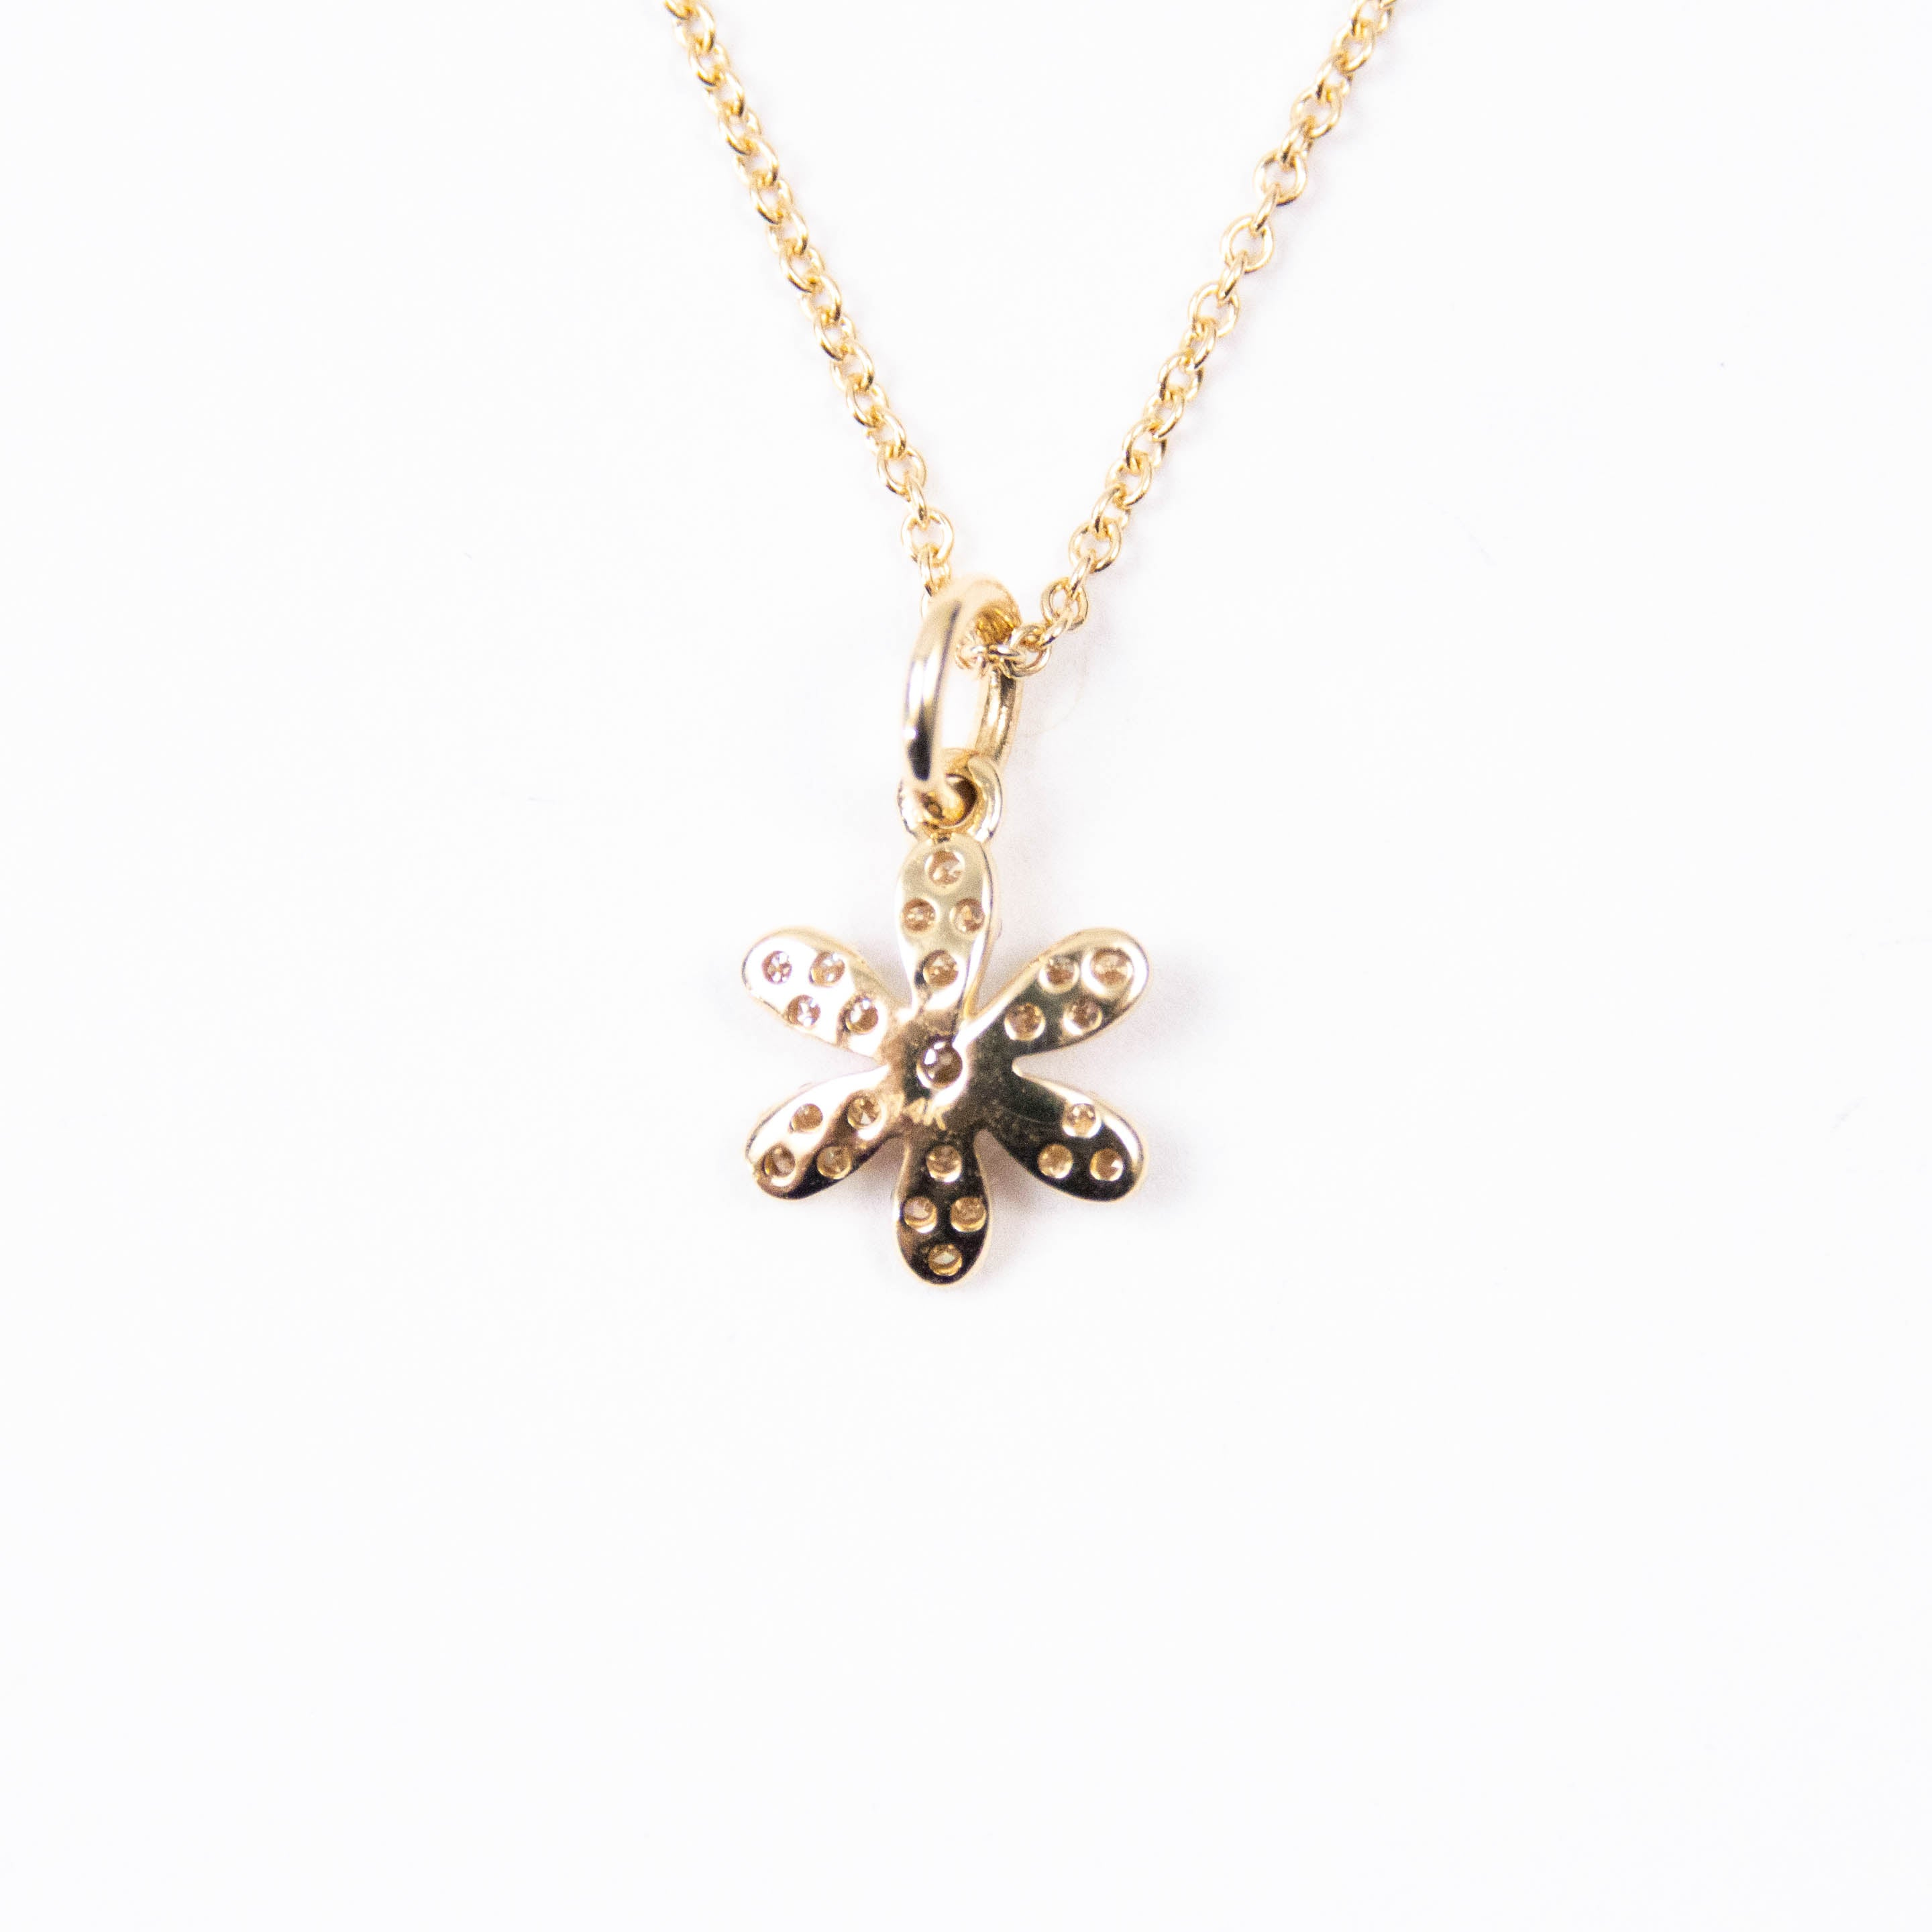 14kt Gold & Diamond Flower Charm Necklace